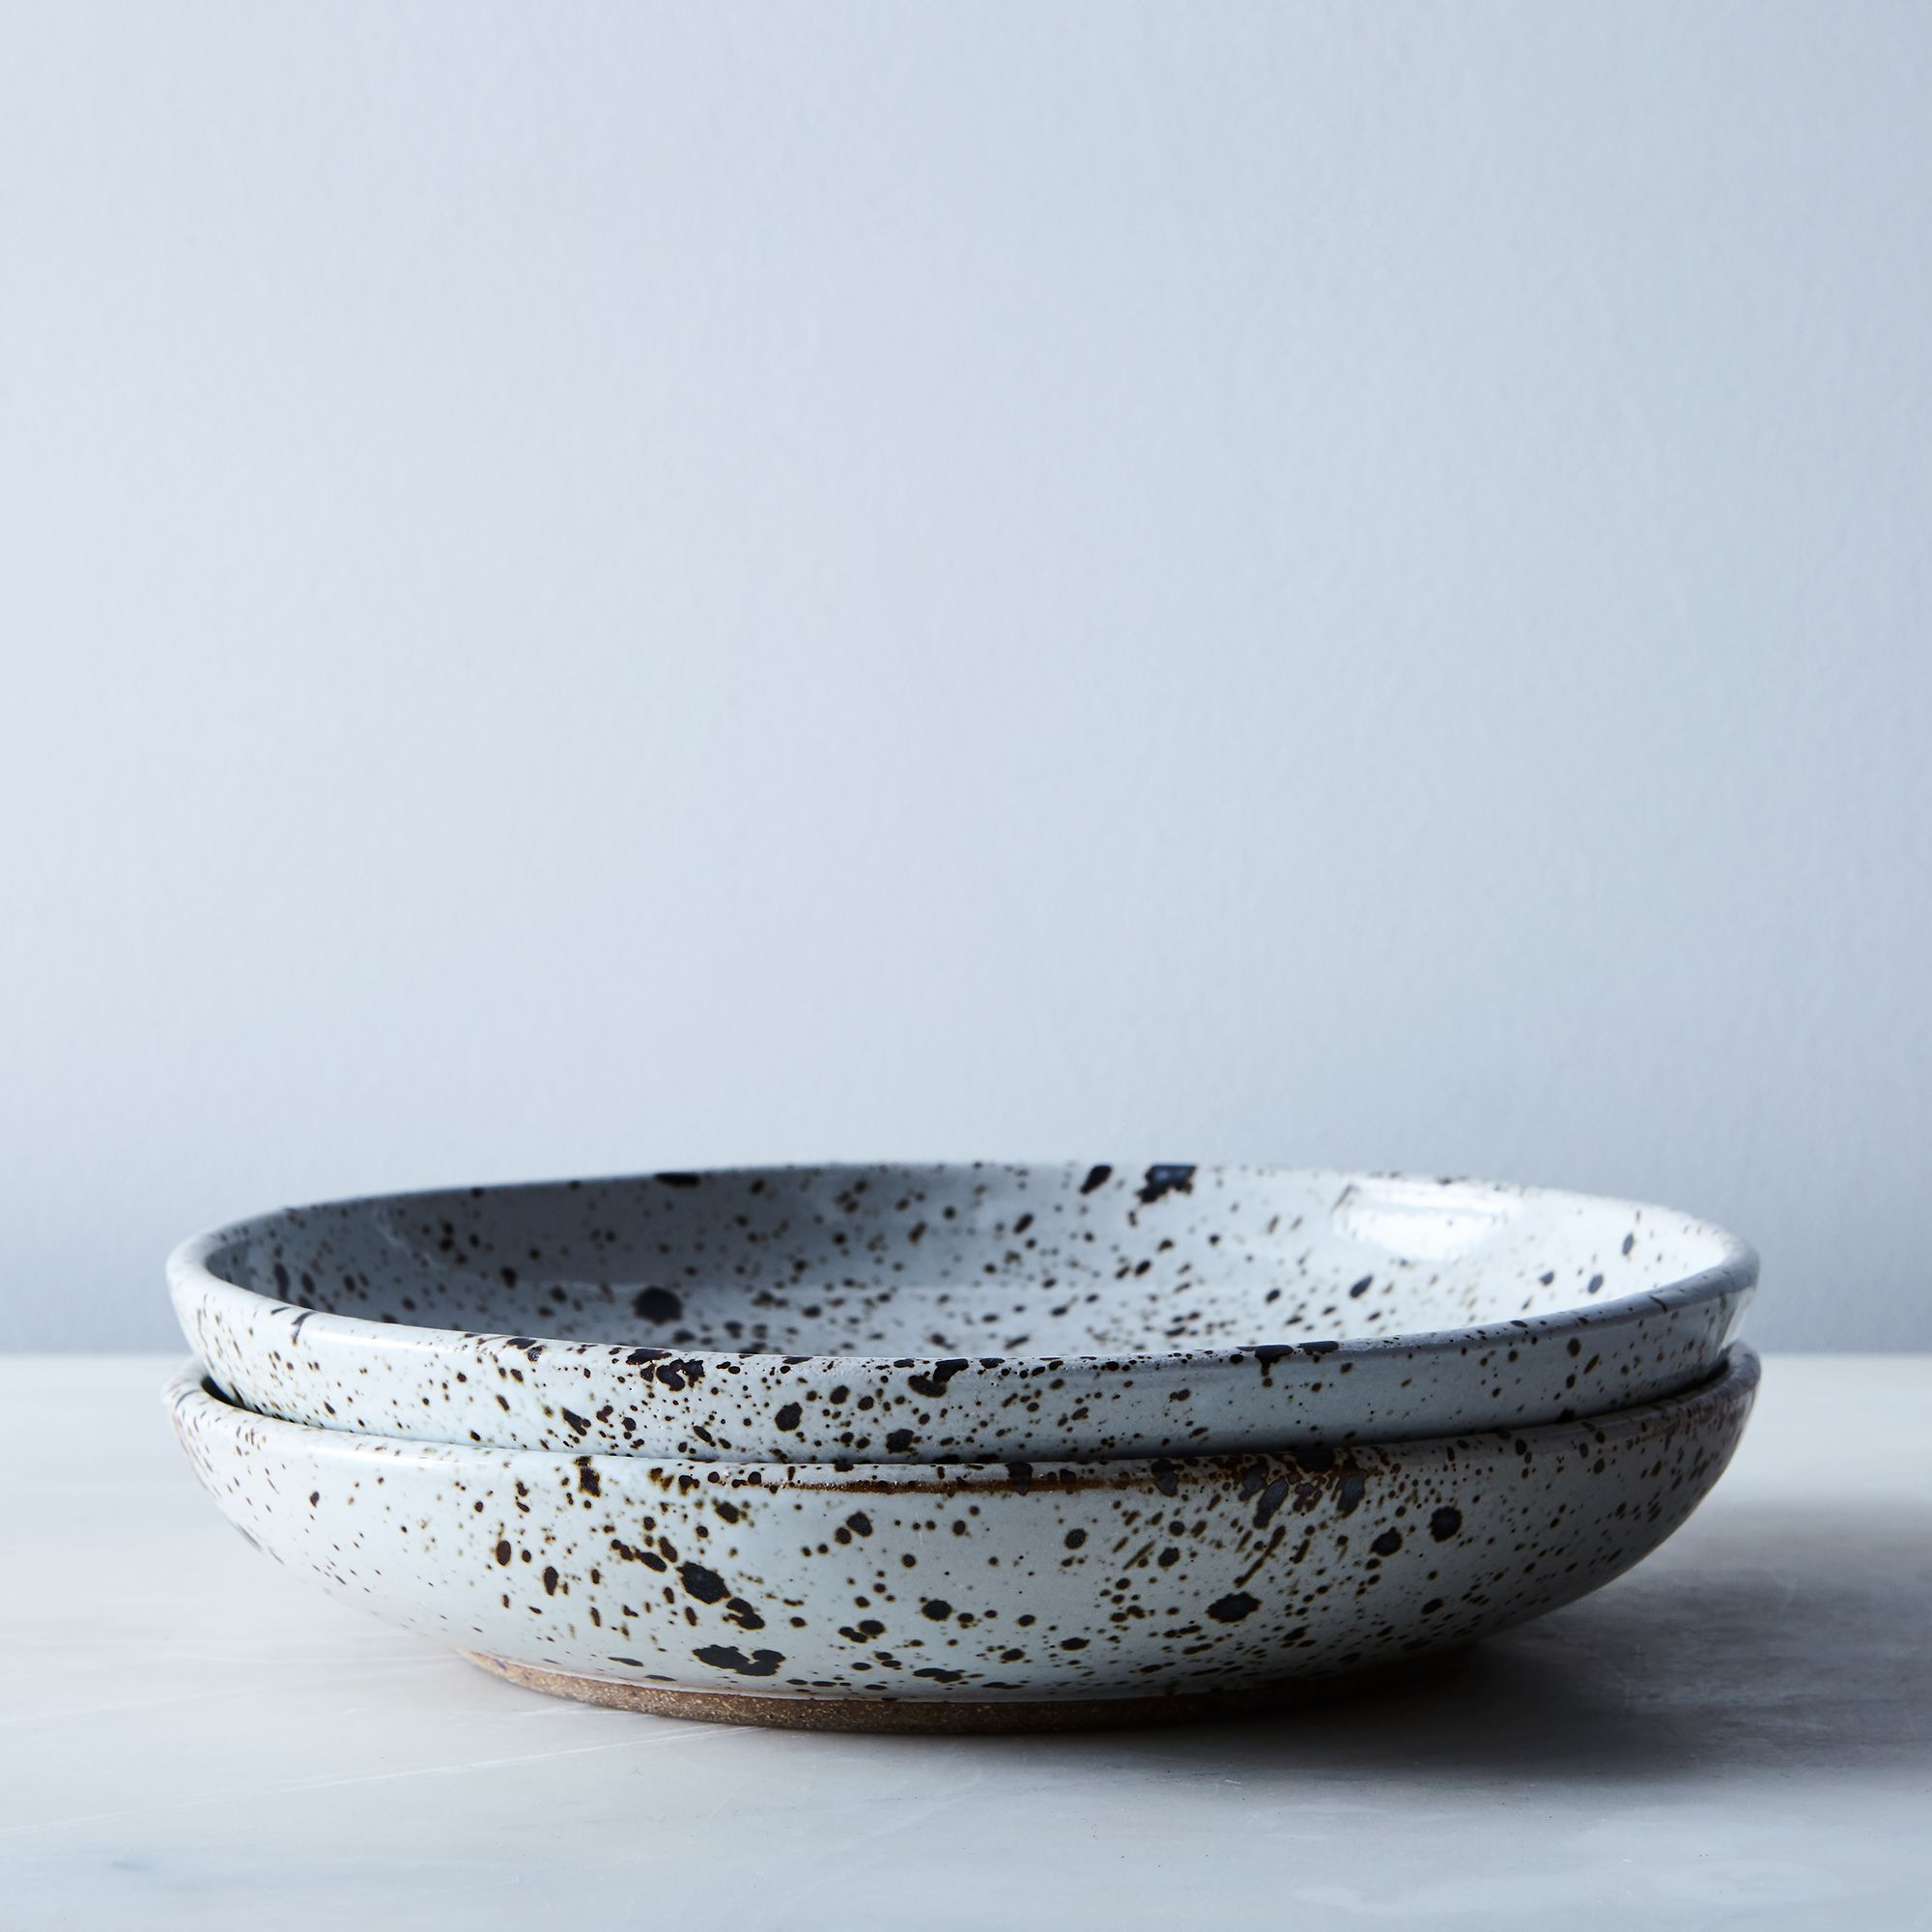 Ff67b4e8 e05e 4267 acd0 ba8b4f9e48b2  2017 0620 sarah kersten dinnerware speckled shallow bowl set of 2 silo rocky luten 003